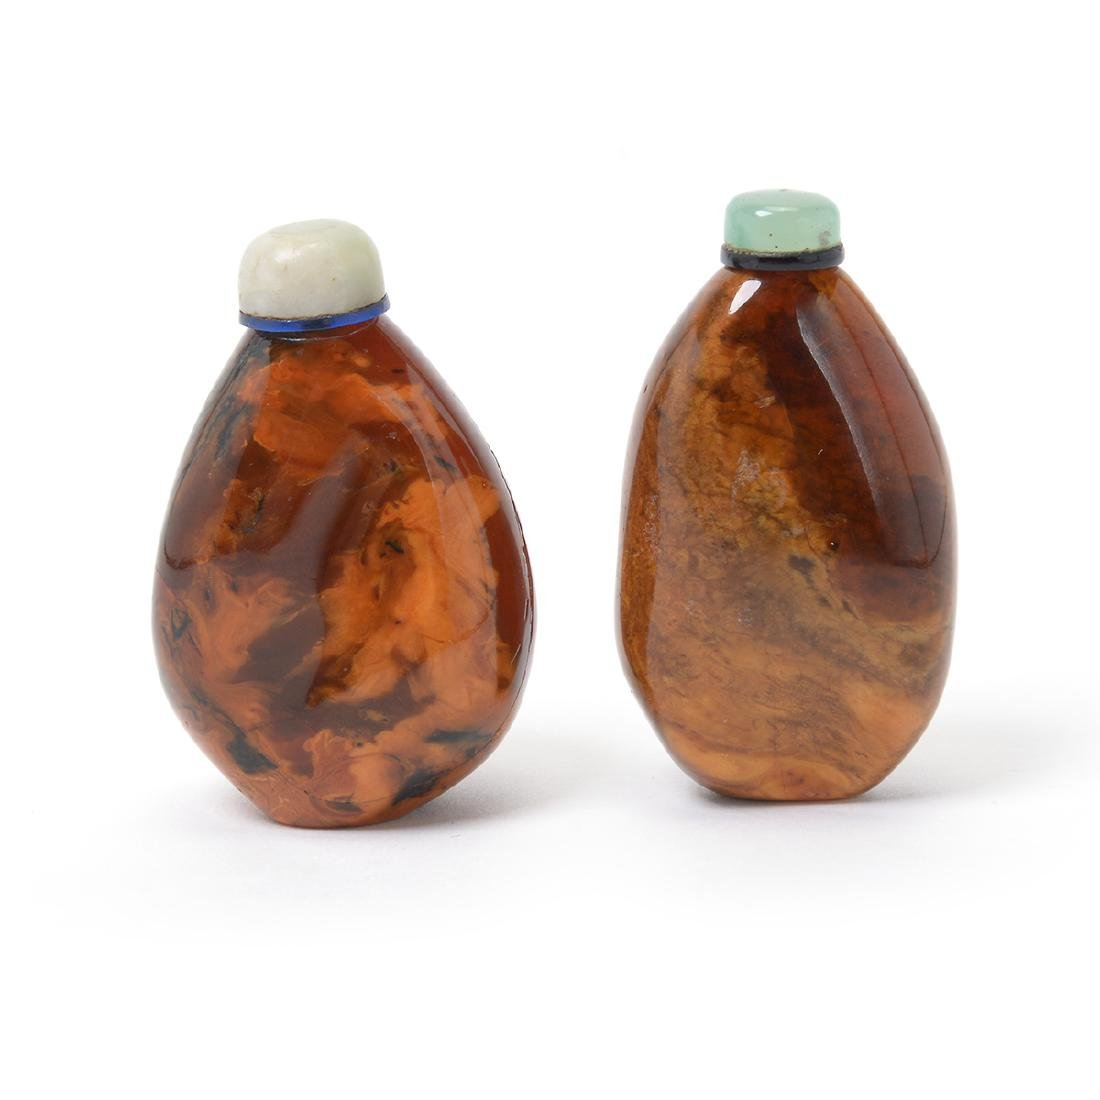 Two Pebble Form Root Amber Snuff Bottles, 19th C